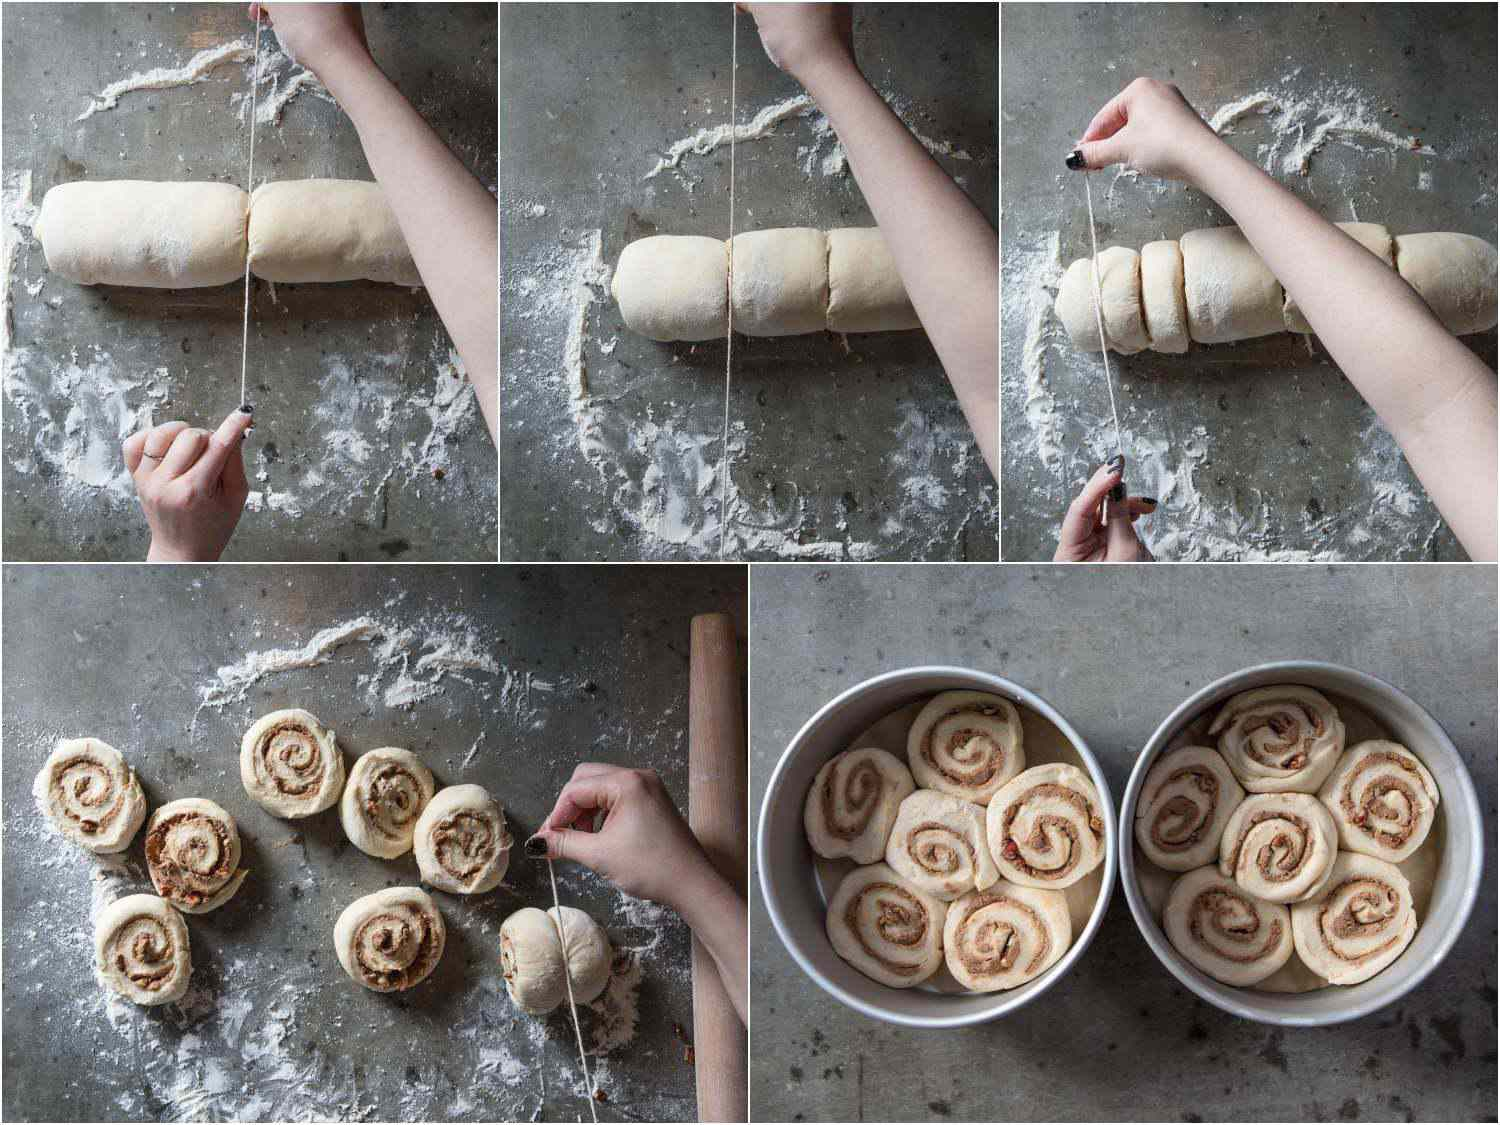 Photo collage showing the process of cutting cinnamon rolls with twine then laying them in baking pans.